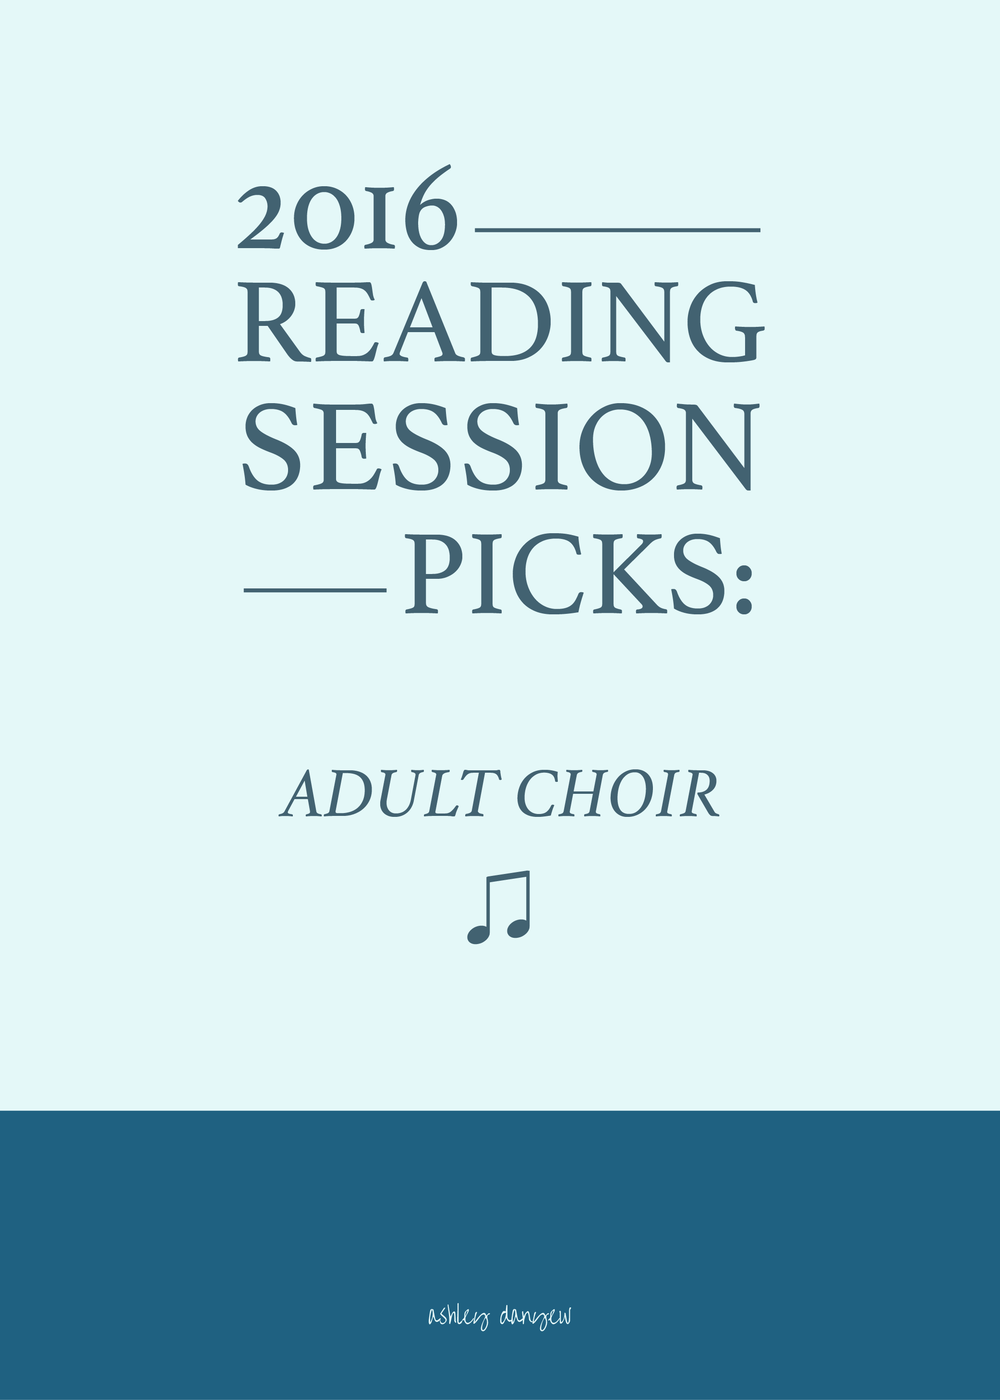 2016 Reading Session Picks - Adult Choir-01.png